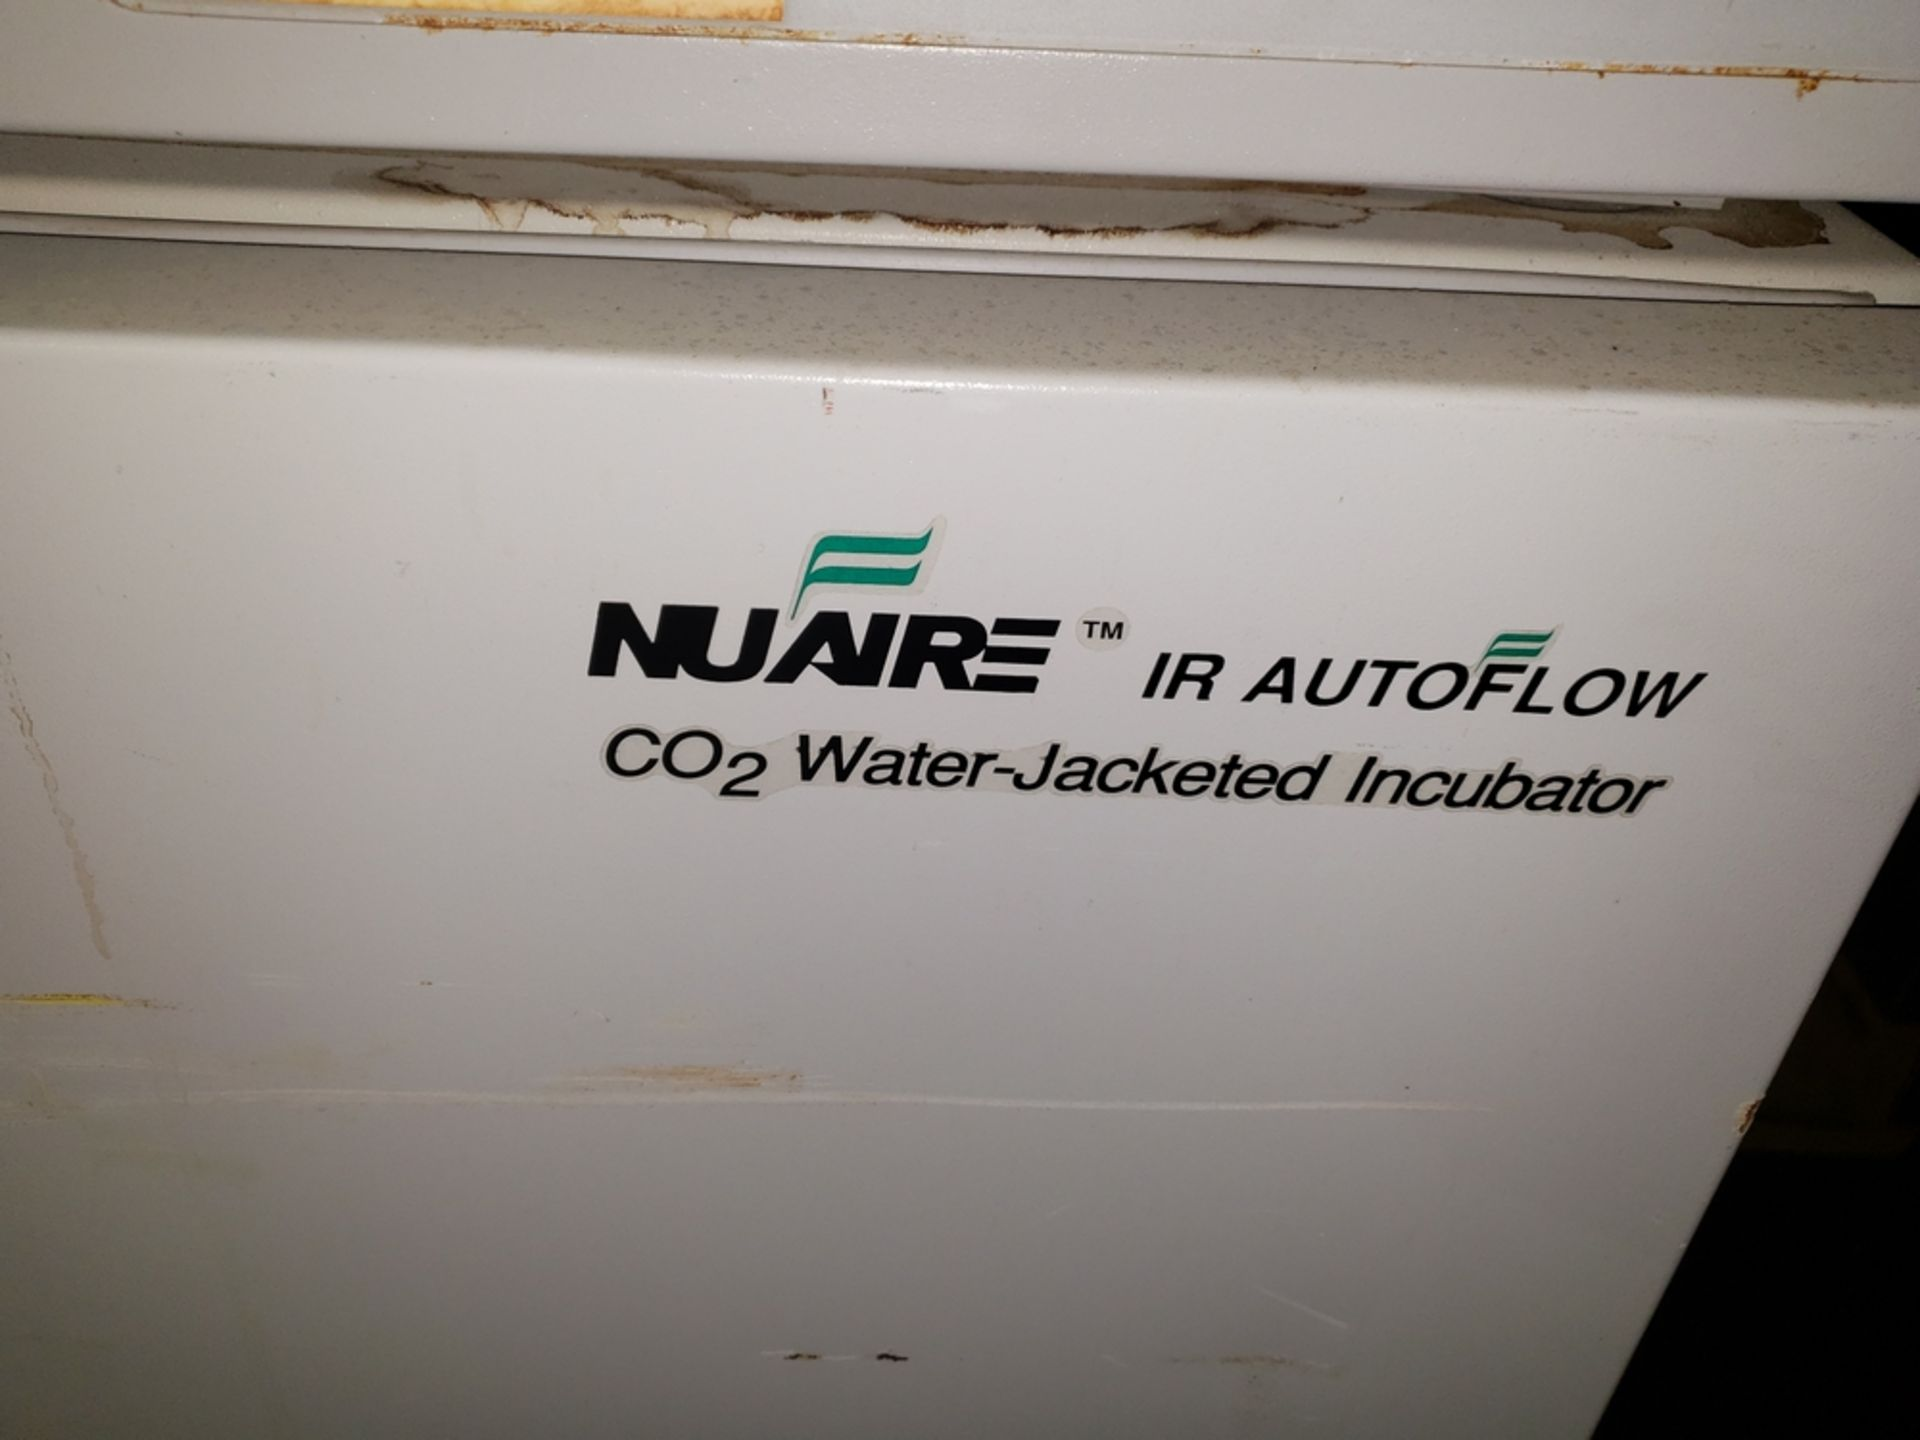 Lot 6 - Nuaire IR Autoflow Incubator, model NU-2500, Series 24, water jacketed, serial# 71532.